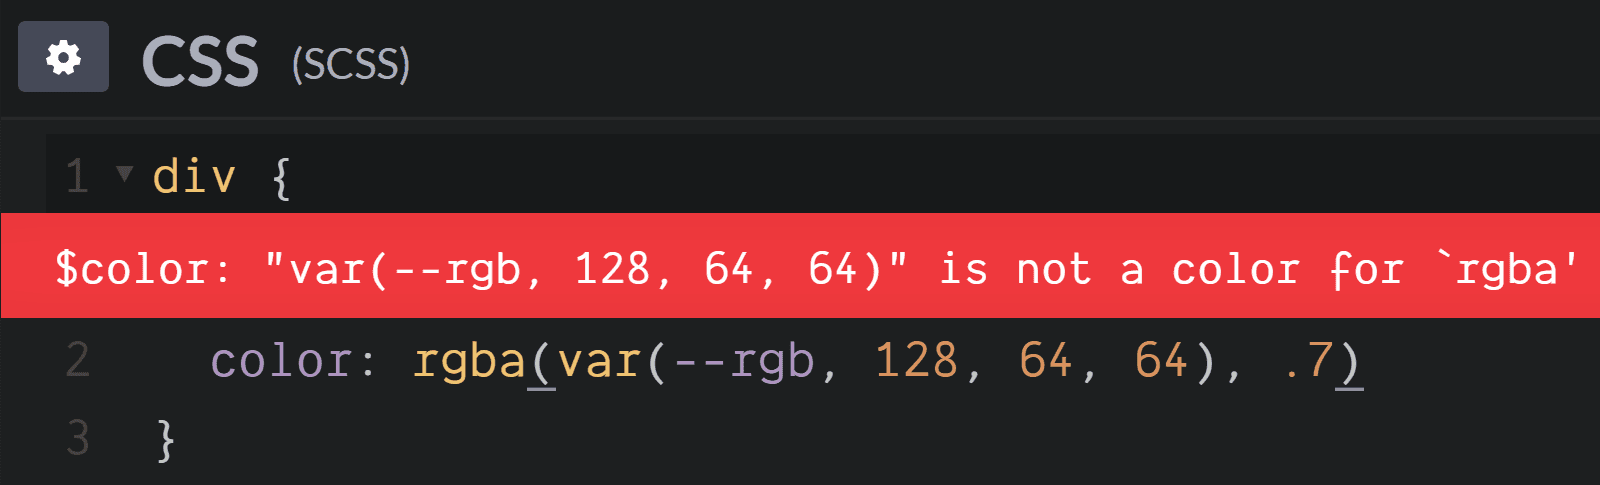 Screenshot. Shows the `$ color: 'var(--rgb, 128, 64, 64)' is not a color for 'rgba'` error when trying to set `color: rgba(var(--rgb, 128, 64, 64), .7)`.